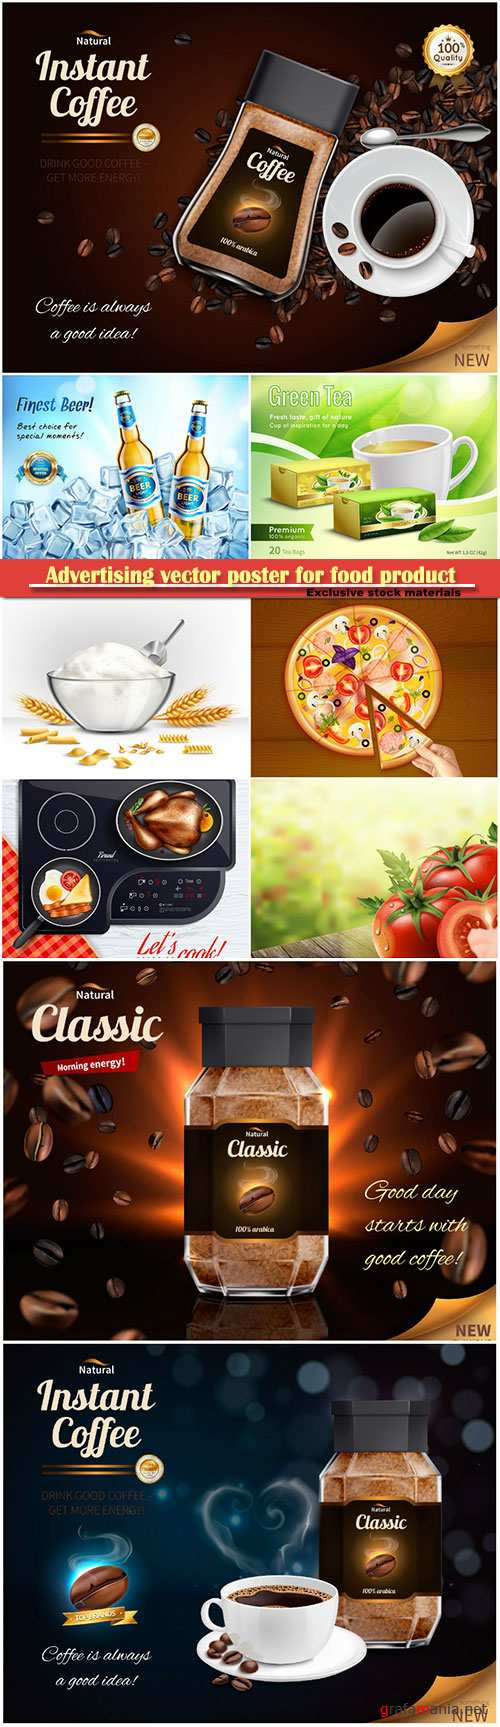 Advertising vector poster for food product